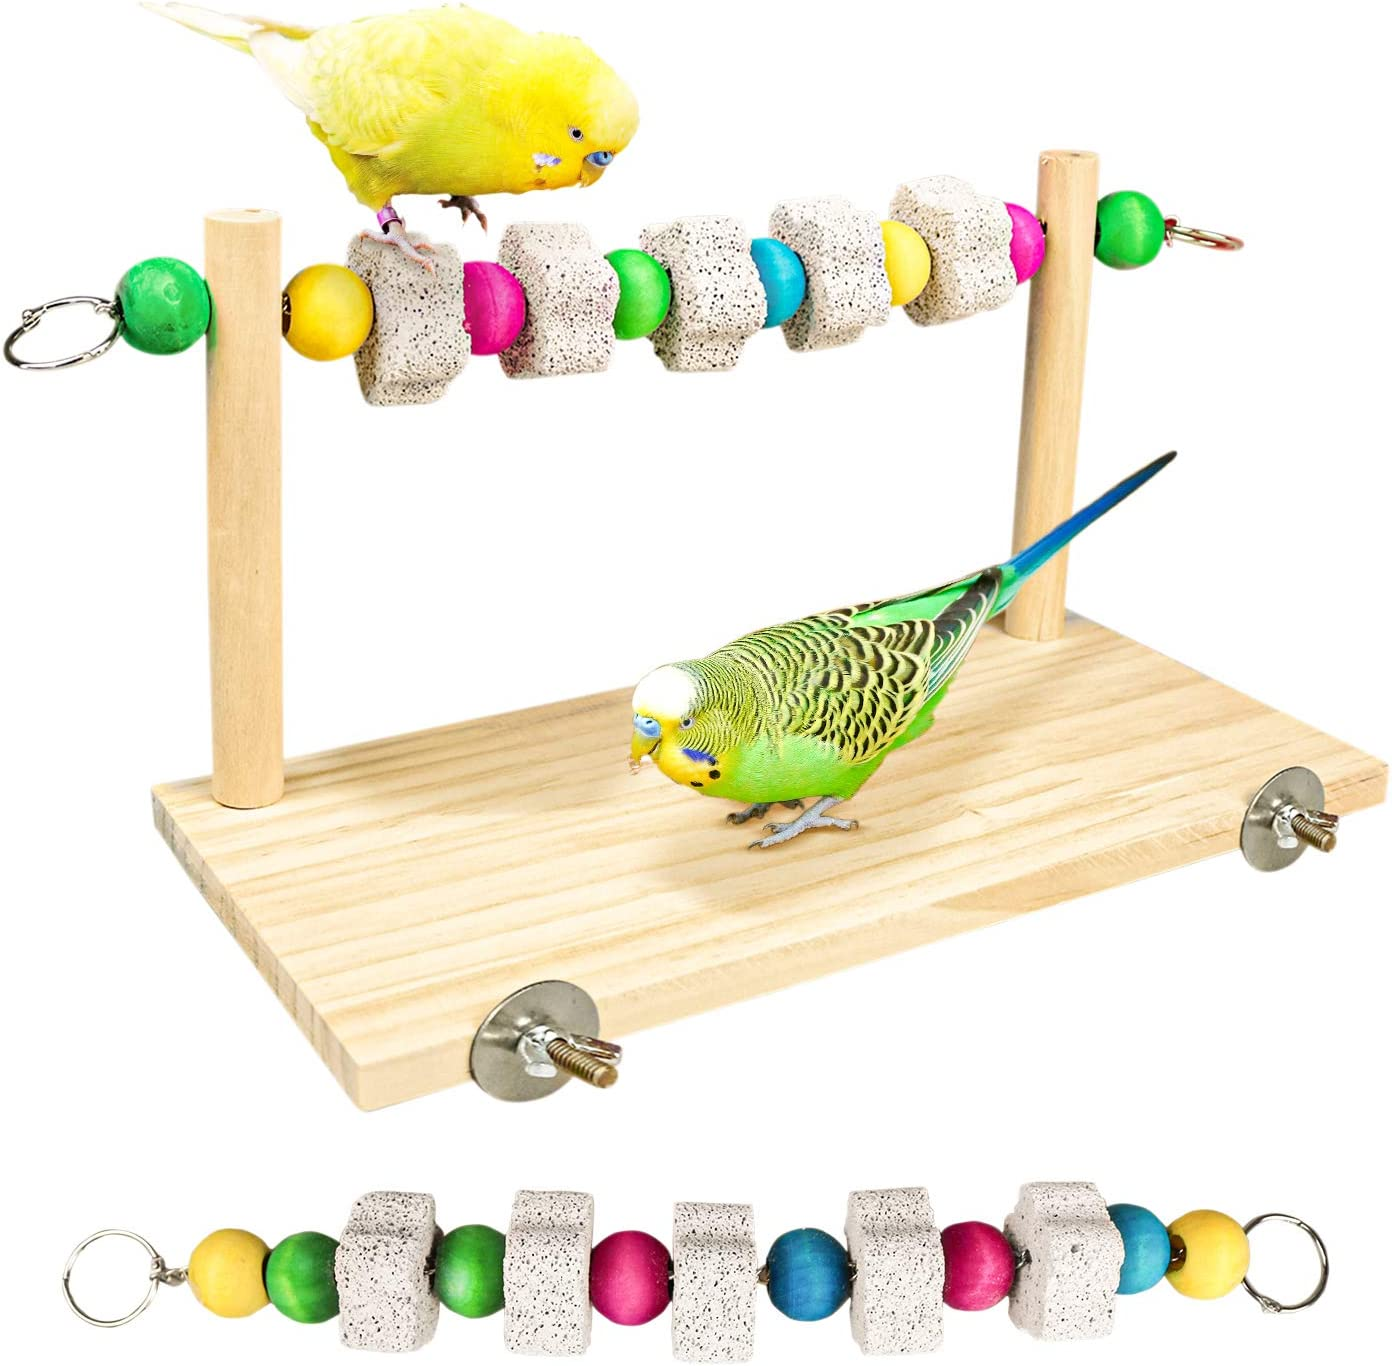 S-Mechanic Bird Cage Accessories, Wood Platform with Chew Toys Lava Ledge Blocks for Small or Medium Parrots,Parakeets,Finch,Mini Macao,Lovebirds